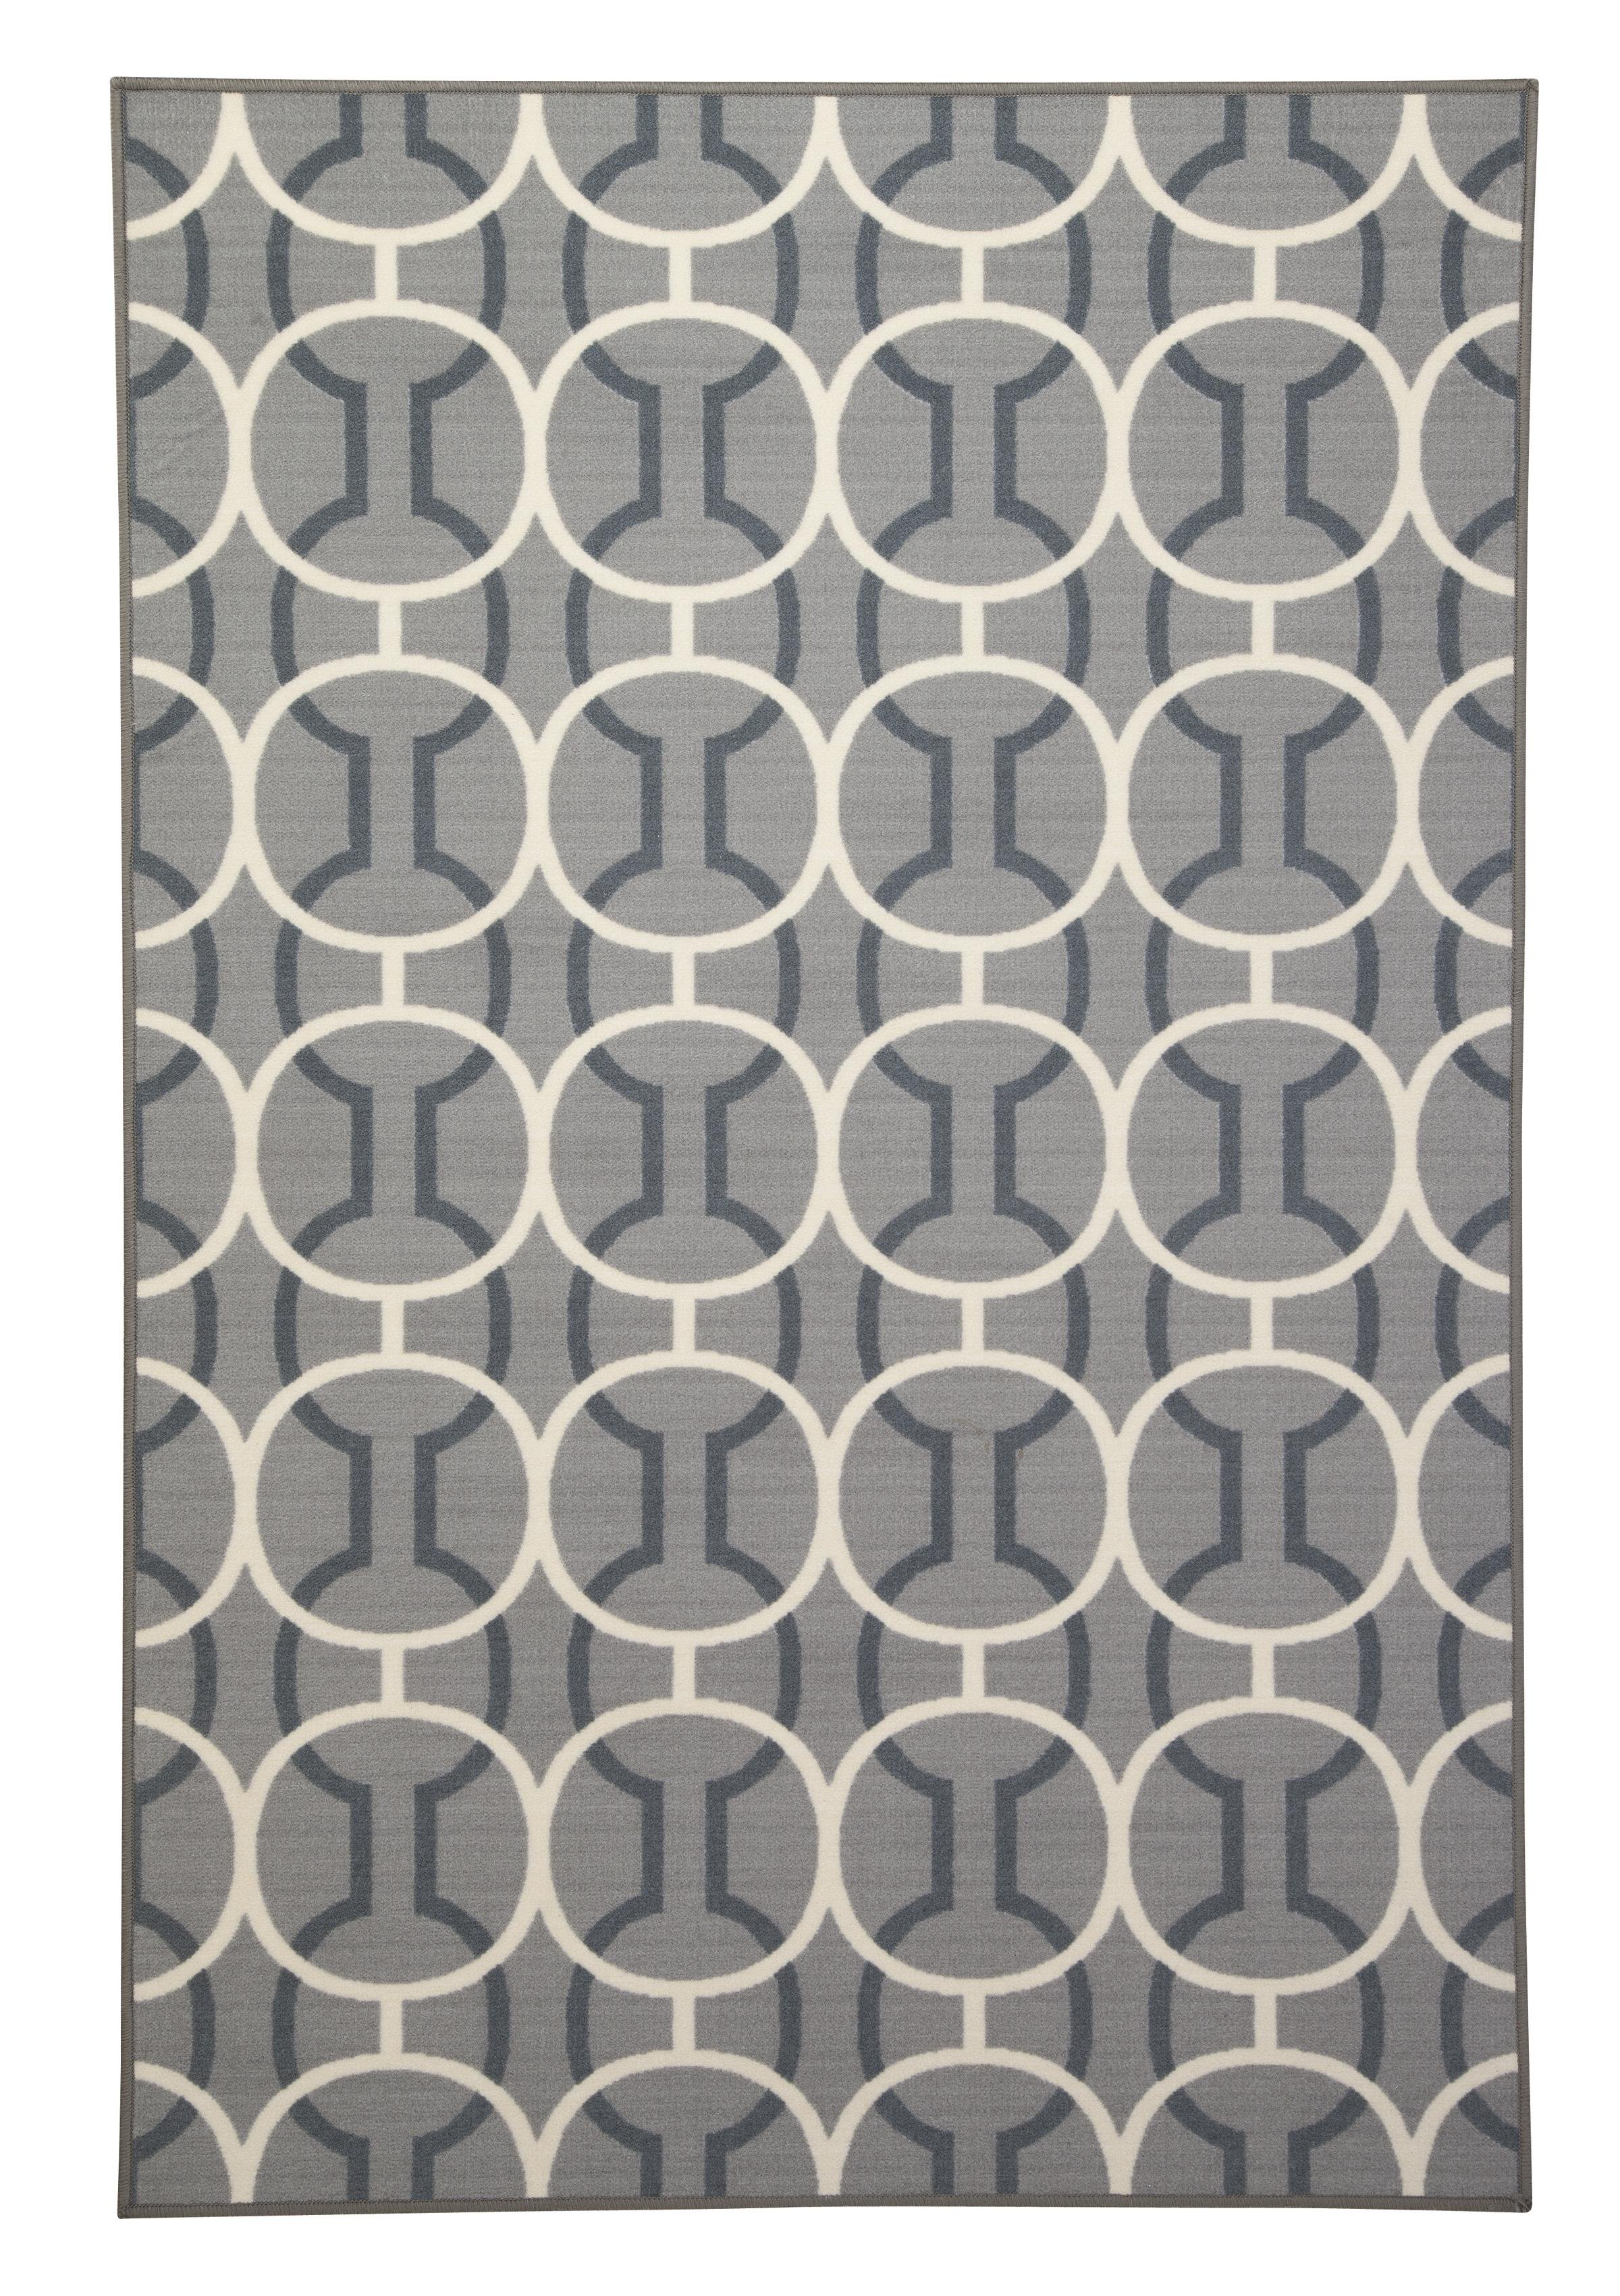 Signature Design by Ashley Transitional Area Rugs Abigail Gray/White Medium Rug - Item Number: R322002